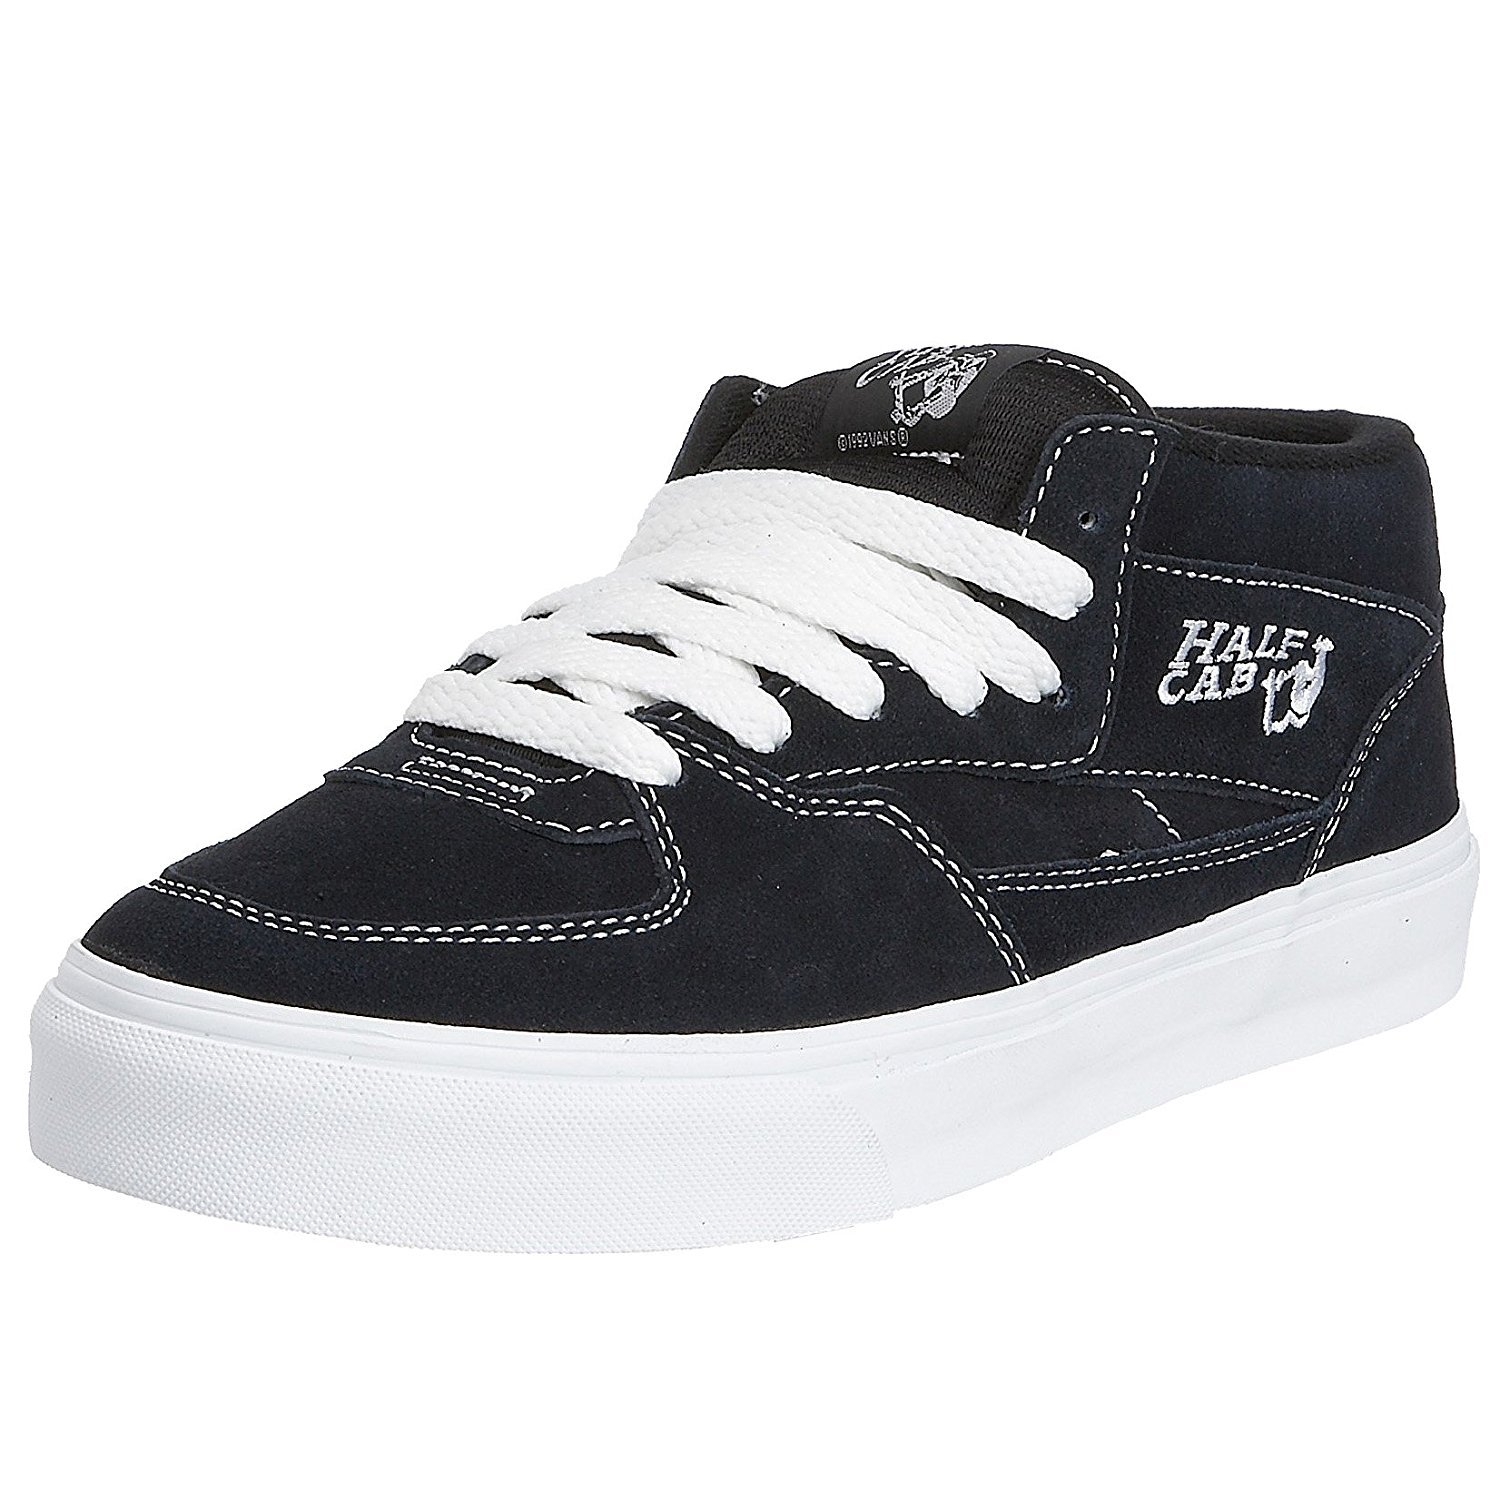 3499f31ebd6fd8 Buy VANS HALF CAB SKATE SHOES Online at Low Prices in India - Amazon.in